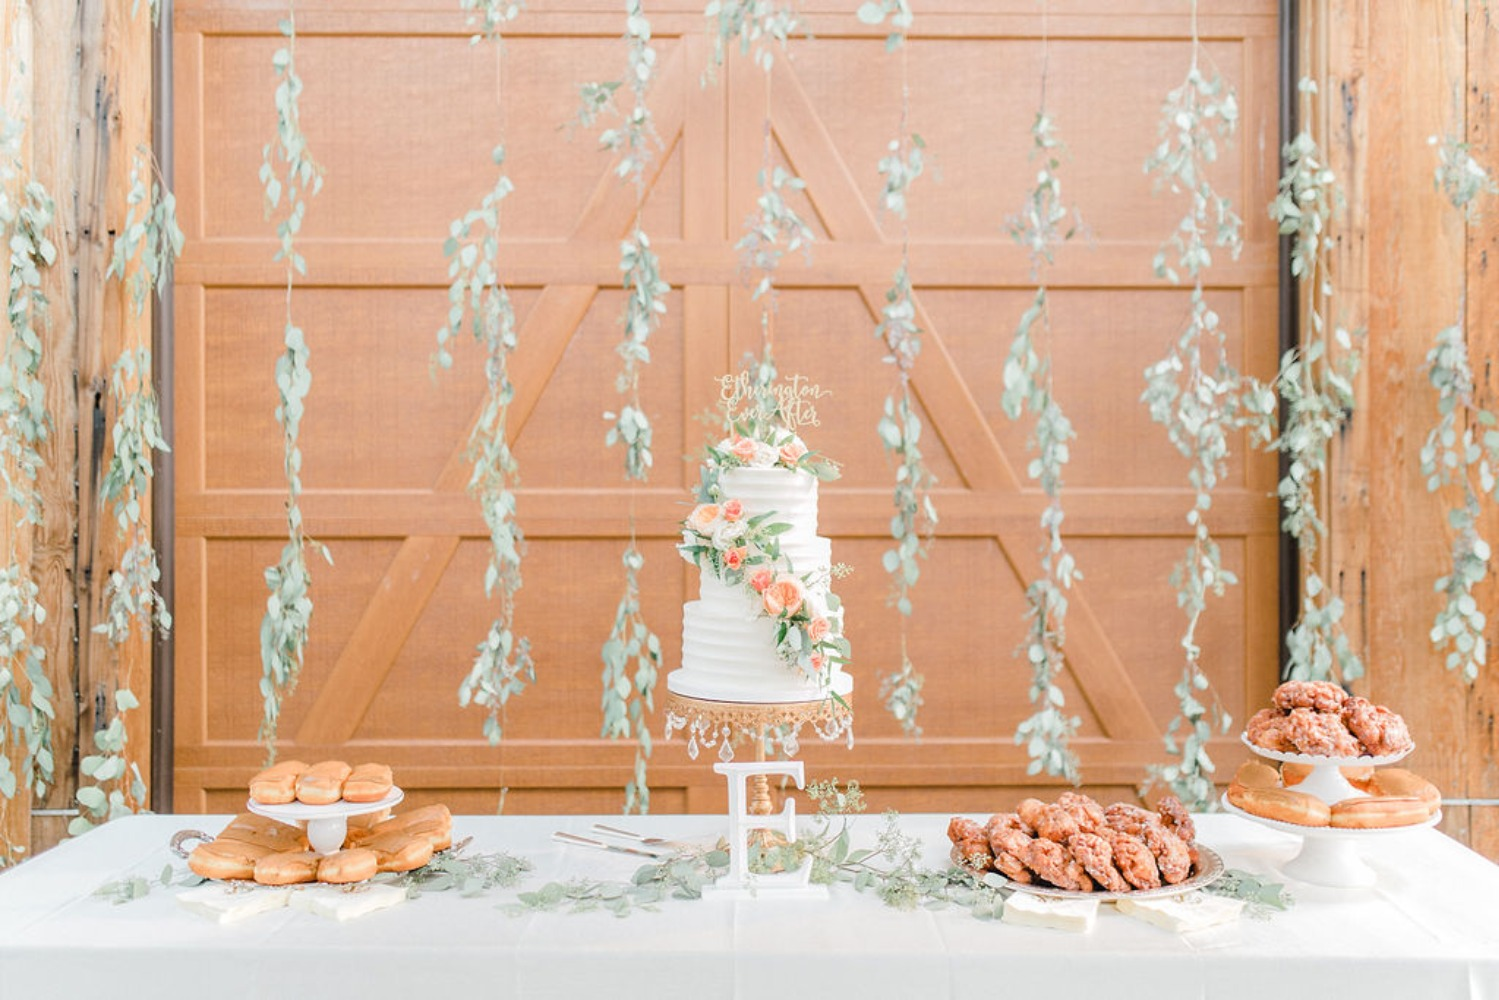 Cake and donut table for a wedding